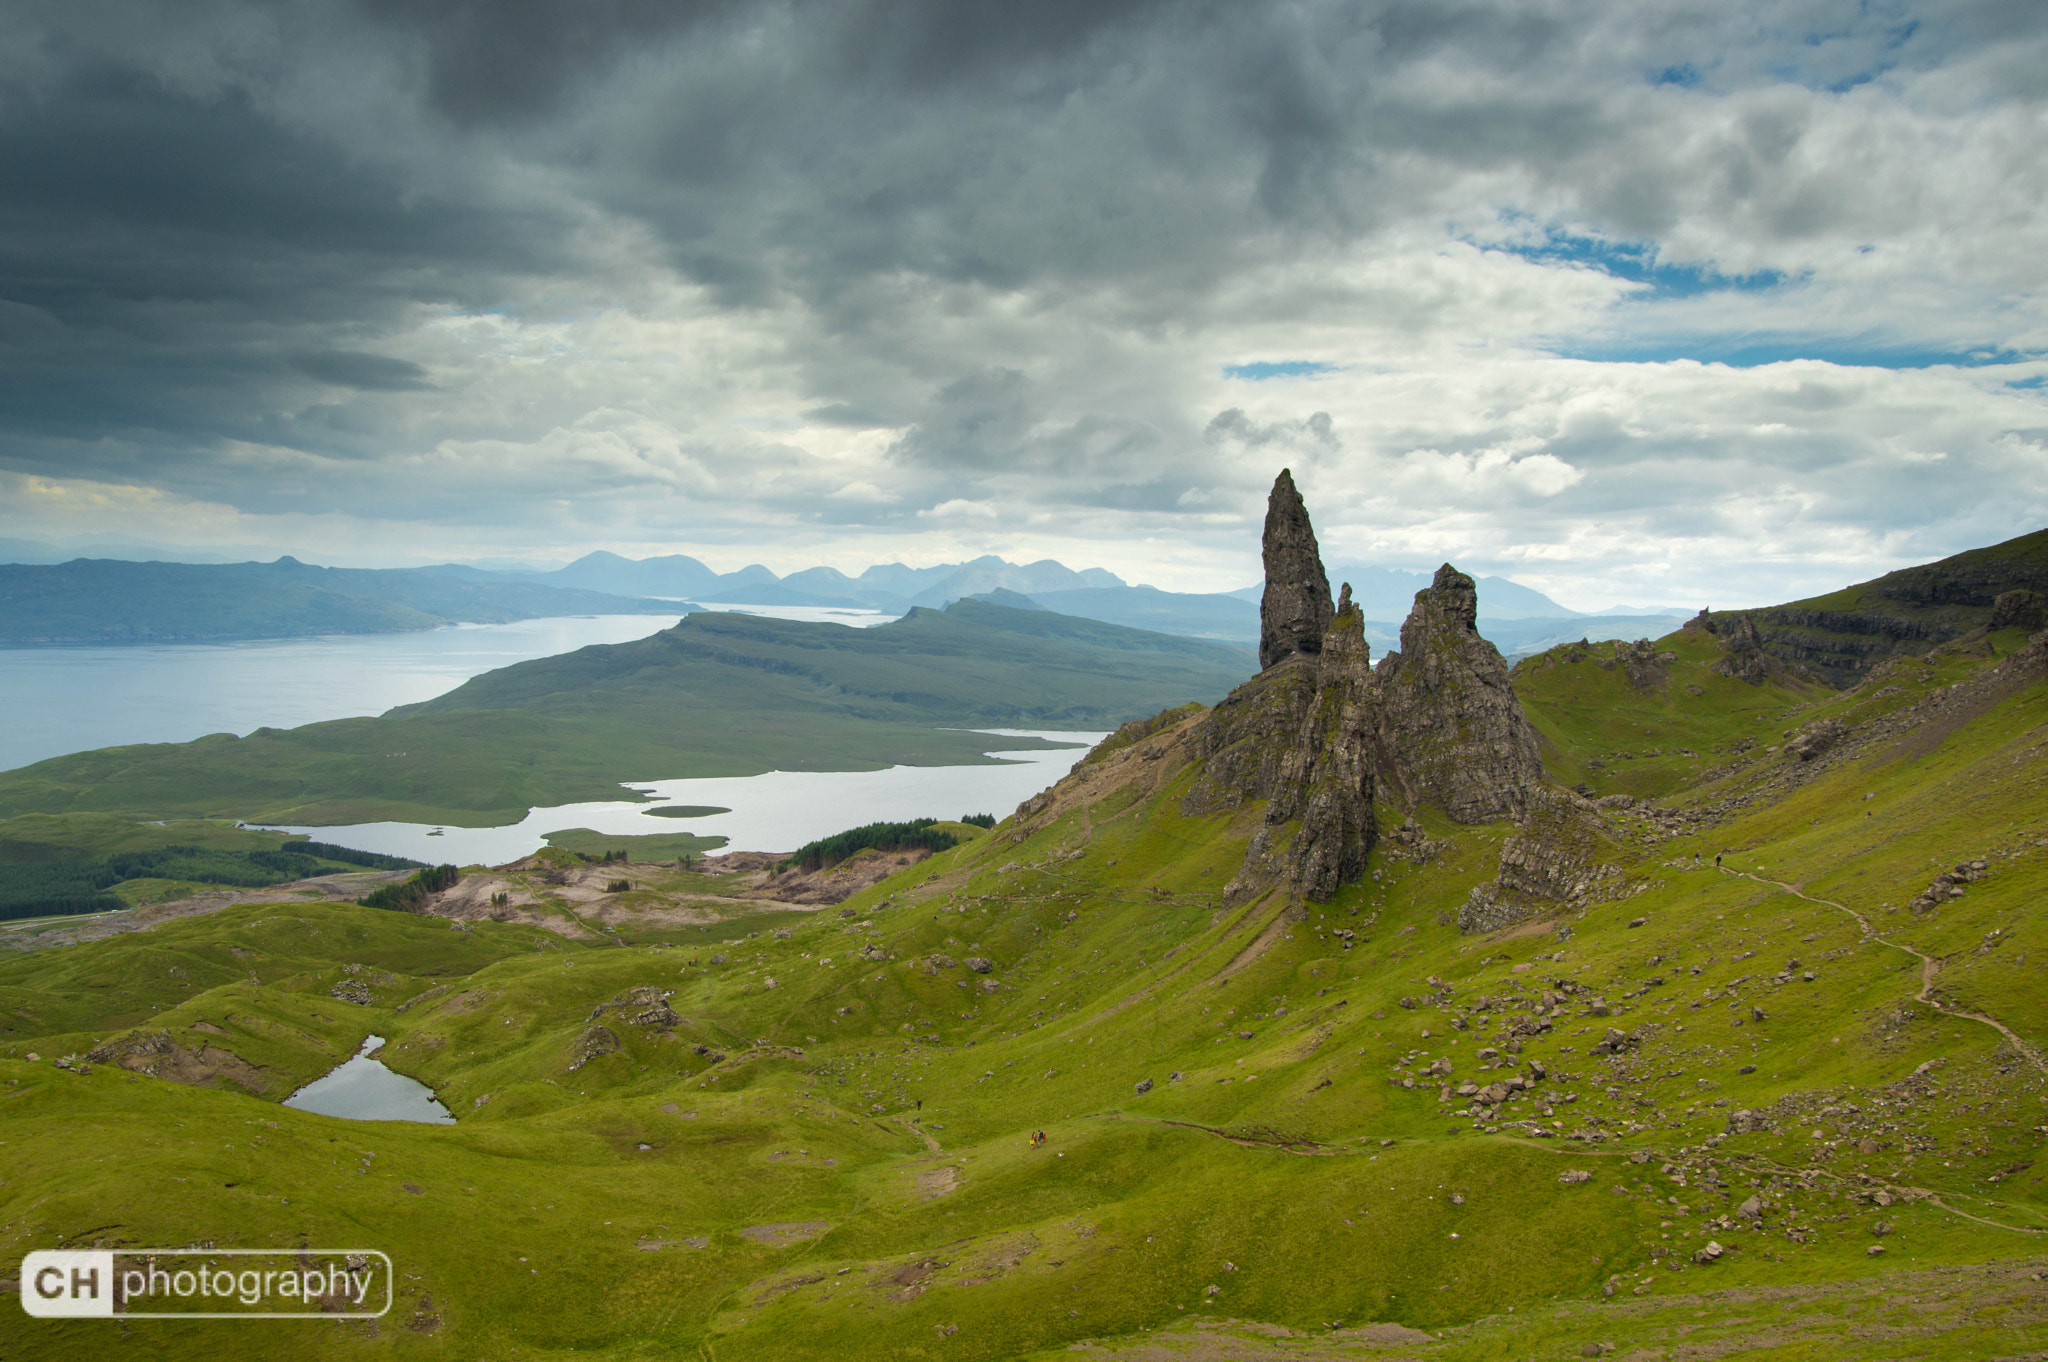 Photograph The Old Man of Storr by Christian Hoiberg on 500px